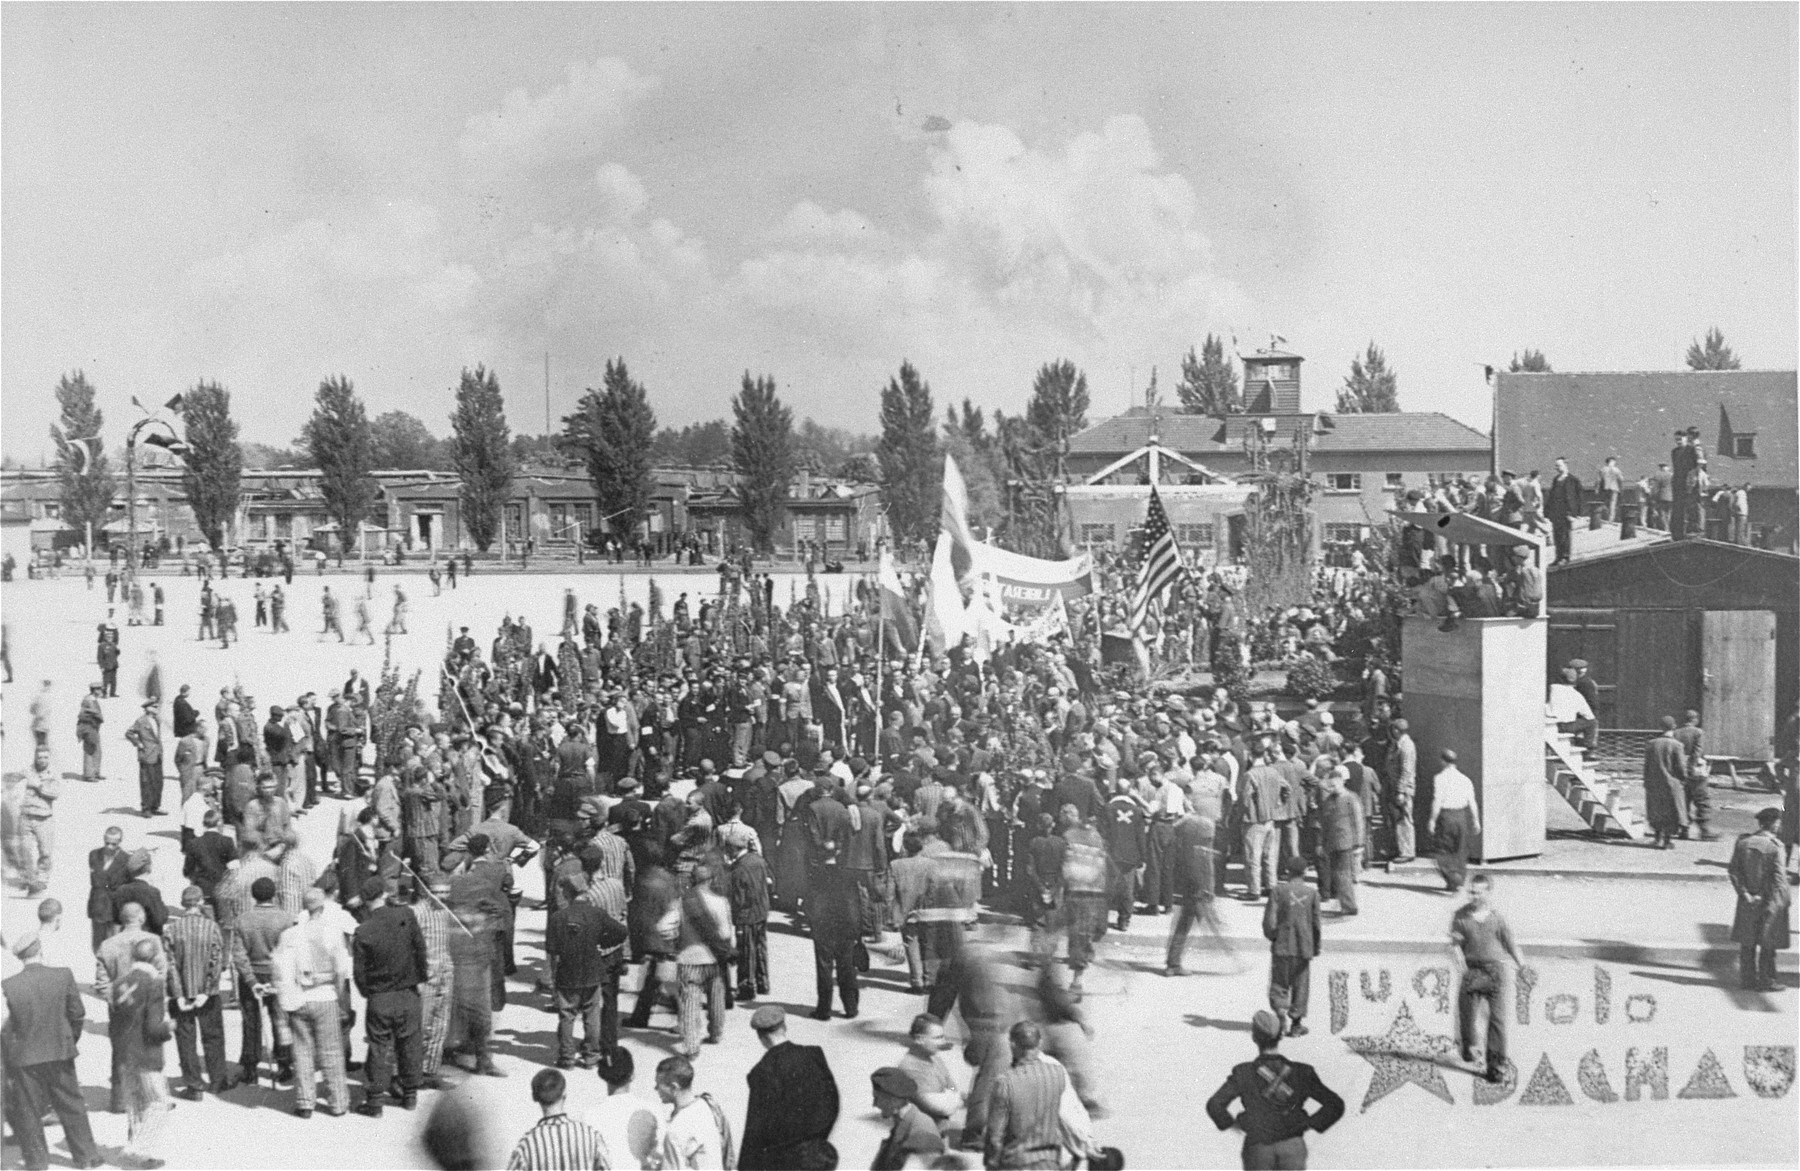 Survivors gathering to salute American liberators and remember their comrades who perished in Dachau.